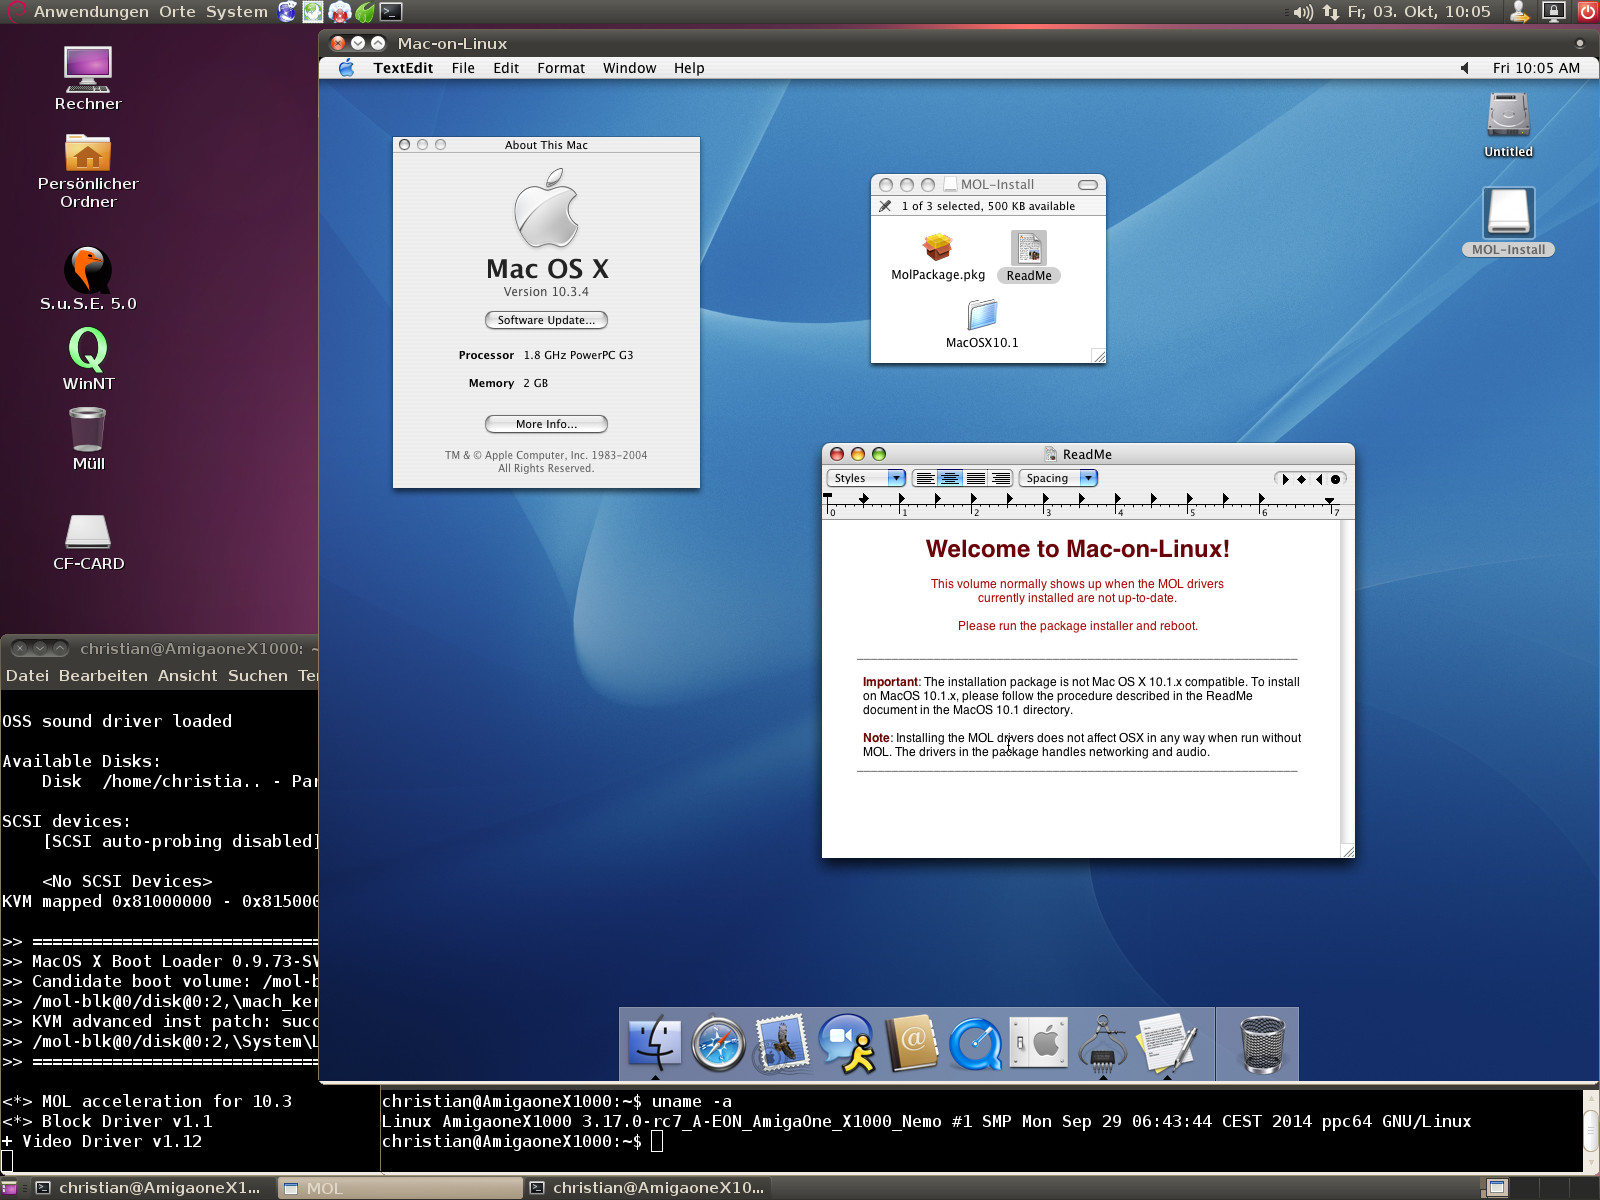 kernel_3.17-rc7_Mac-on-Linux_KVM-PR_with_10.3.4-A1-X1000.jpg